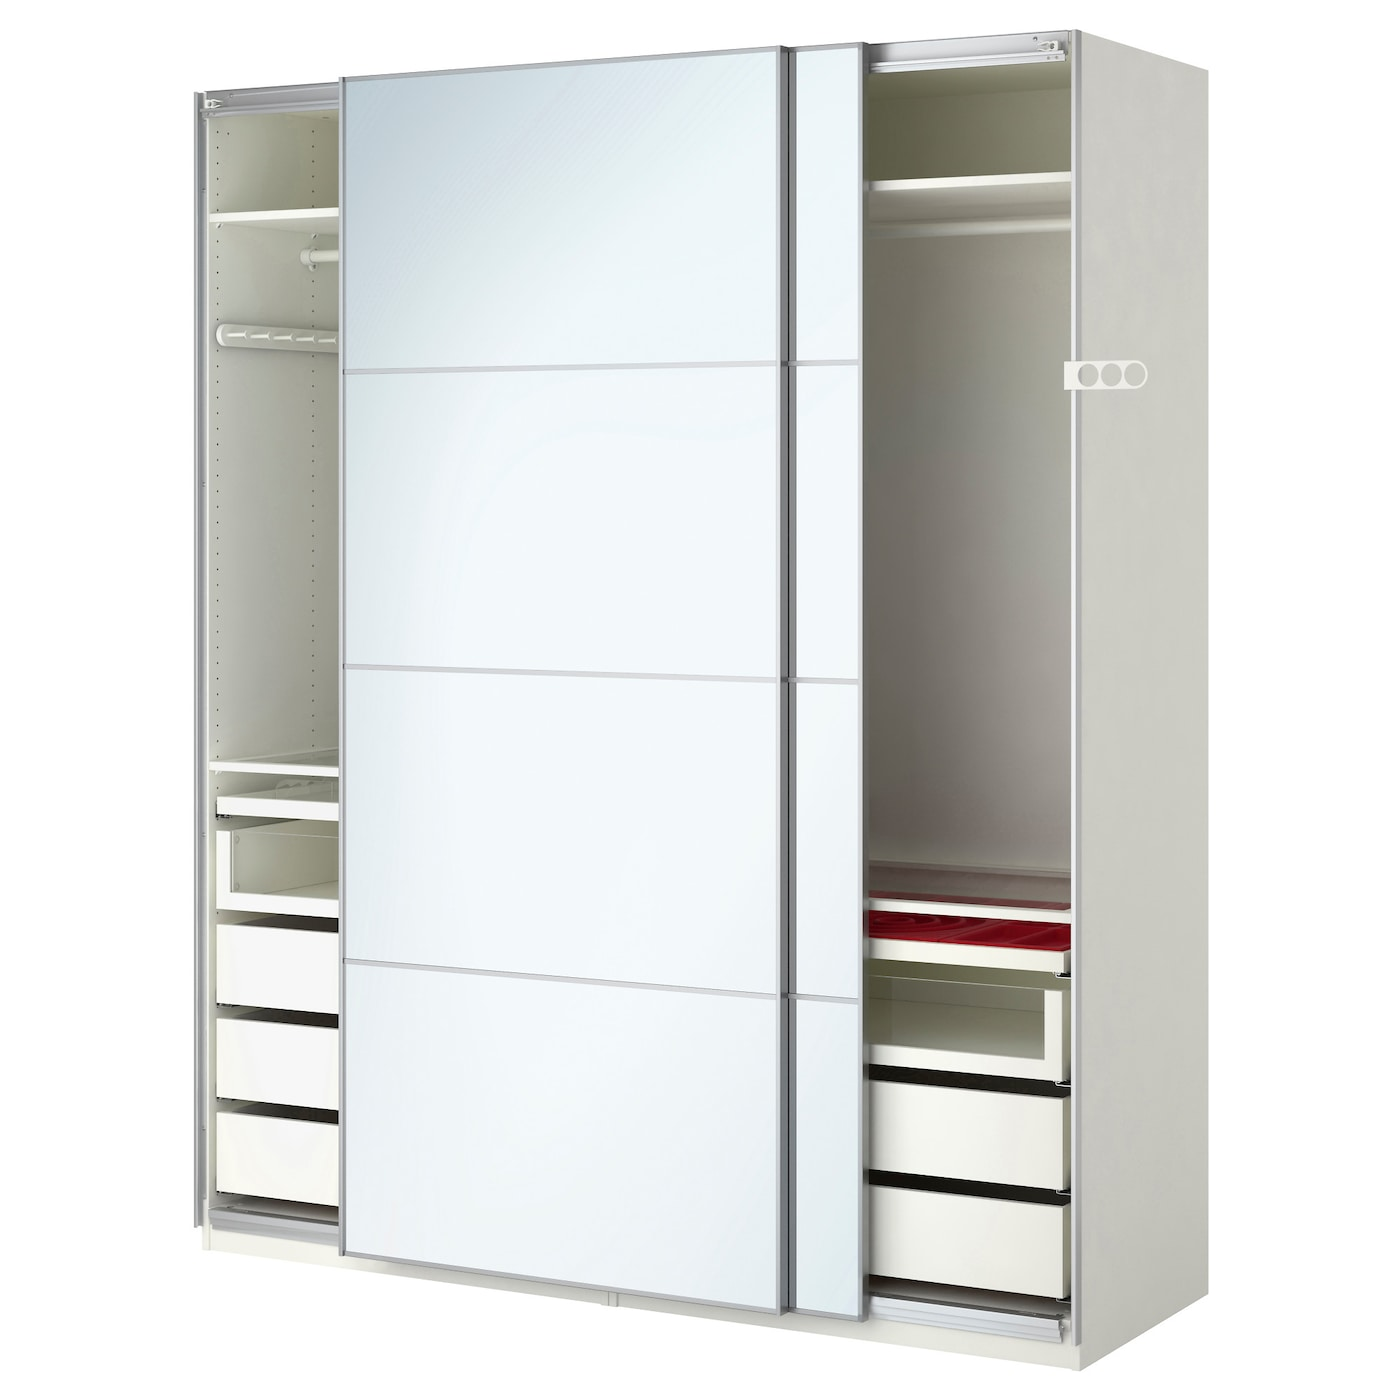 Pax wardrobe white auli mirror glass 200x66x236 cm ikea for Armoire porte coulissante miroir ikea